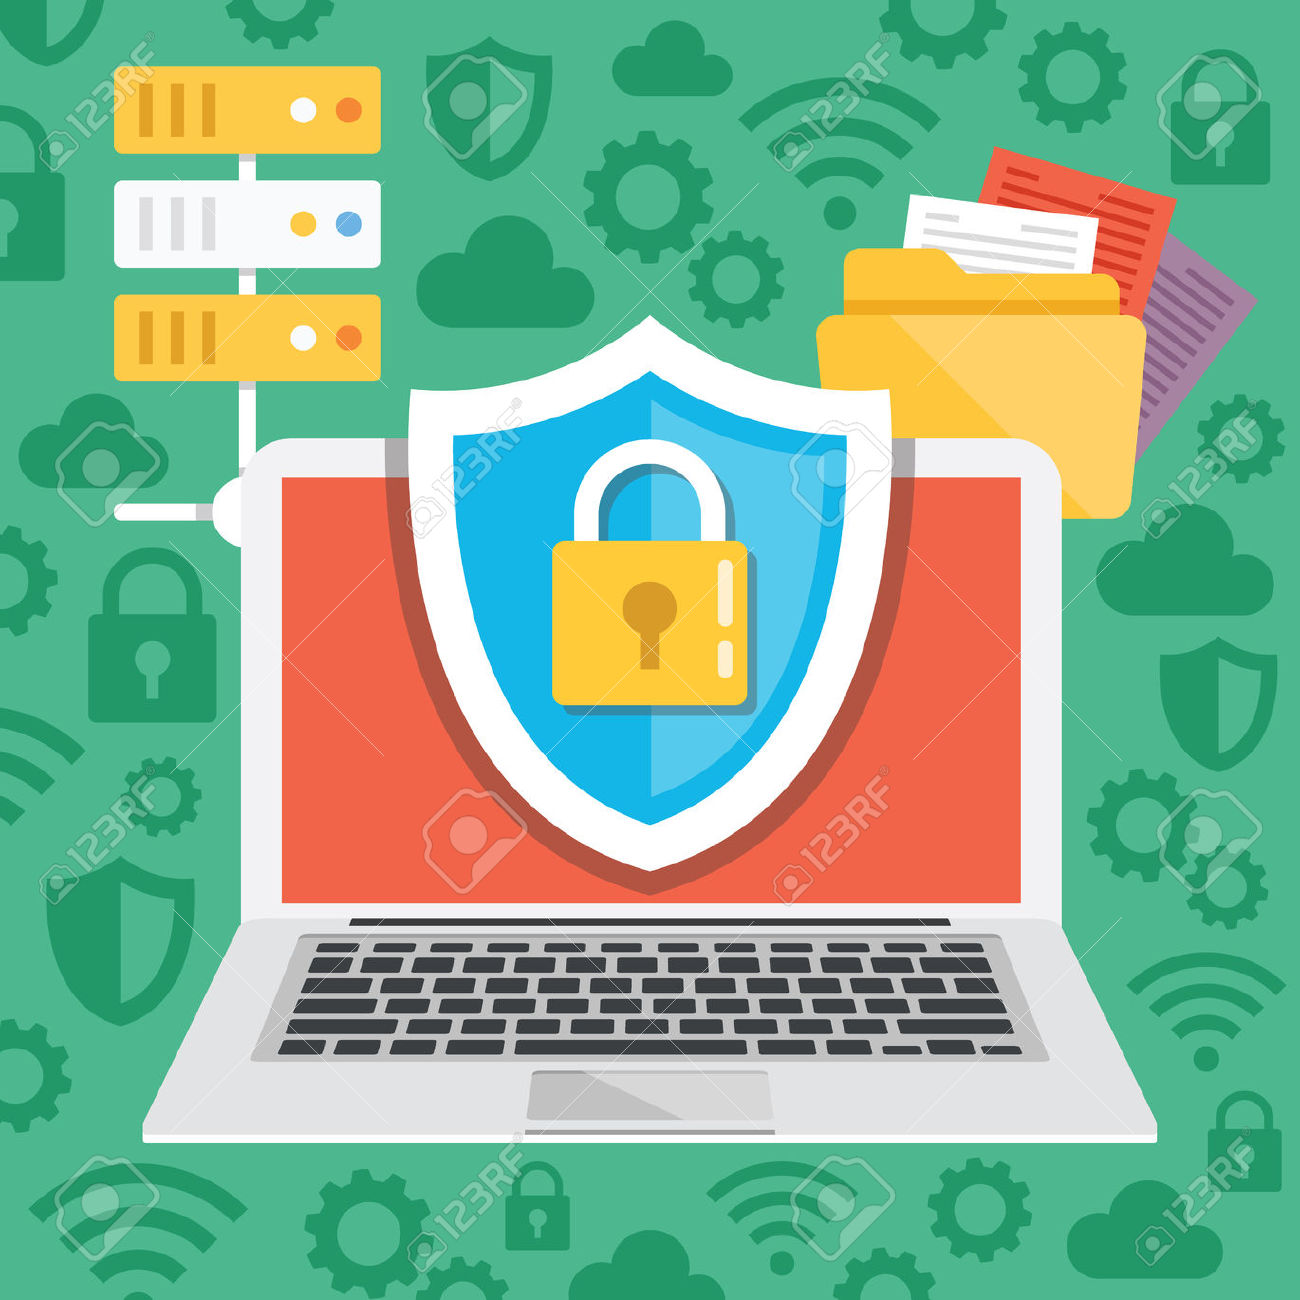 326 Data Breach Stock Illustrations, Cliparts And Royalty Free.